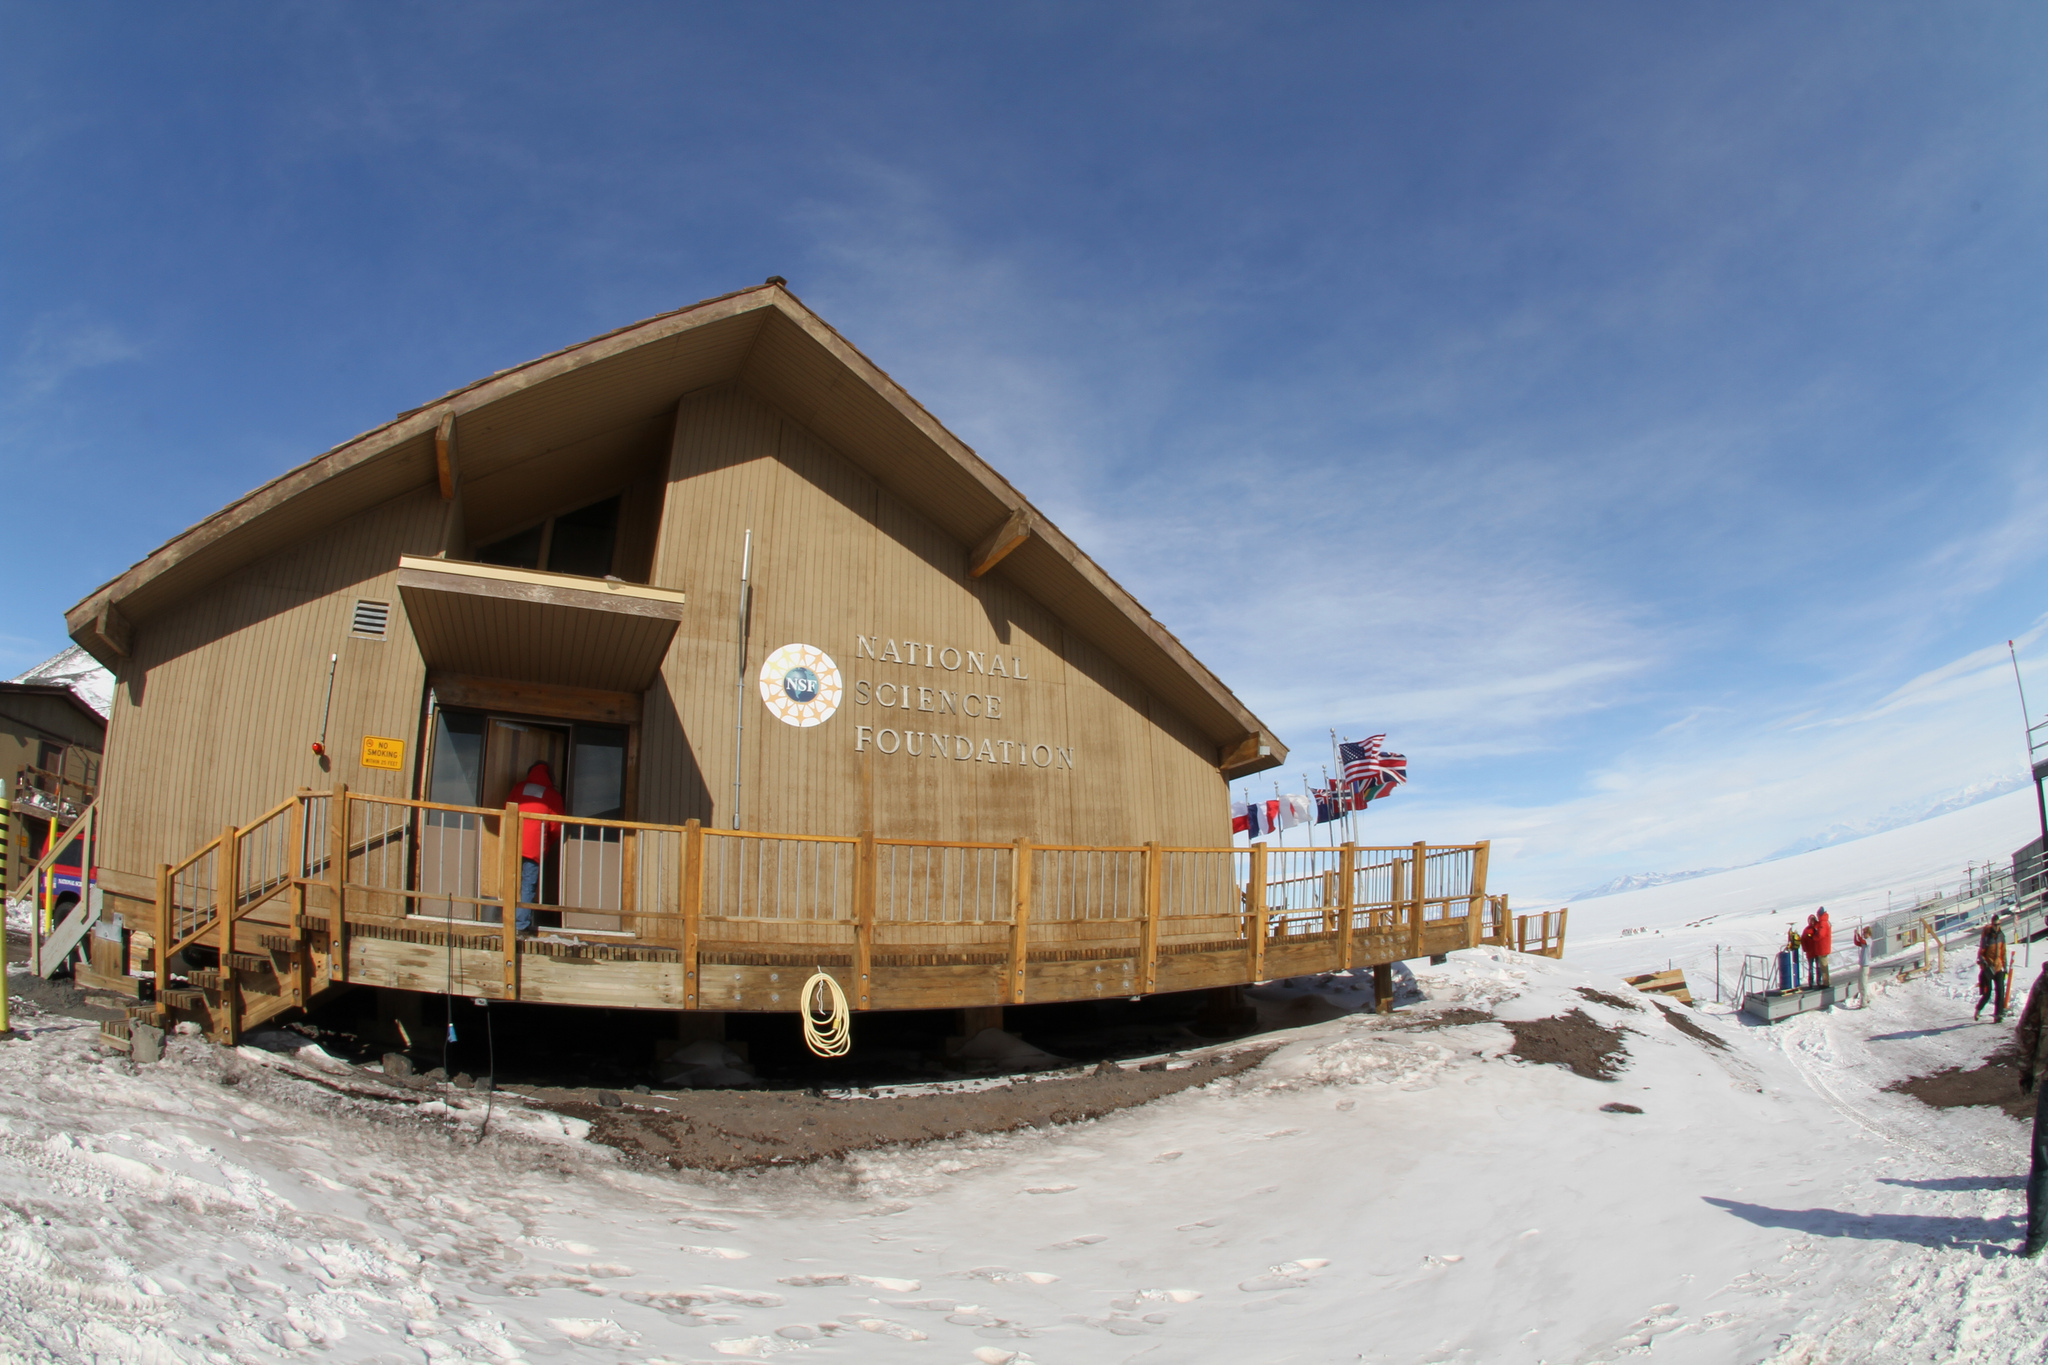 NSF Chalet at McMurdo